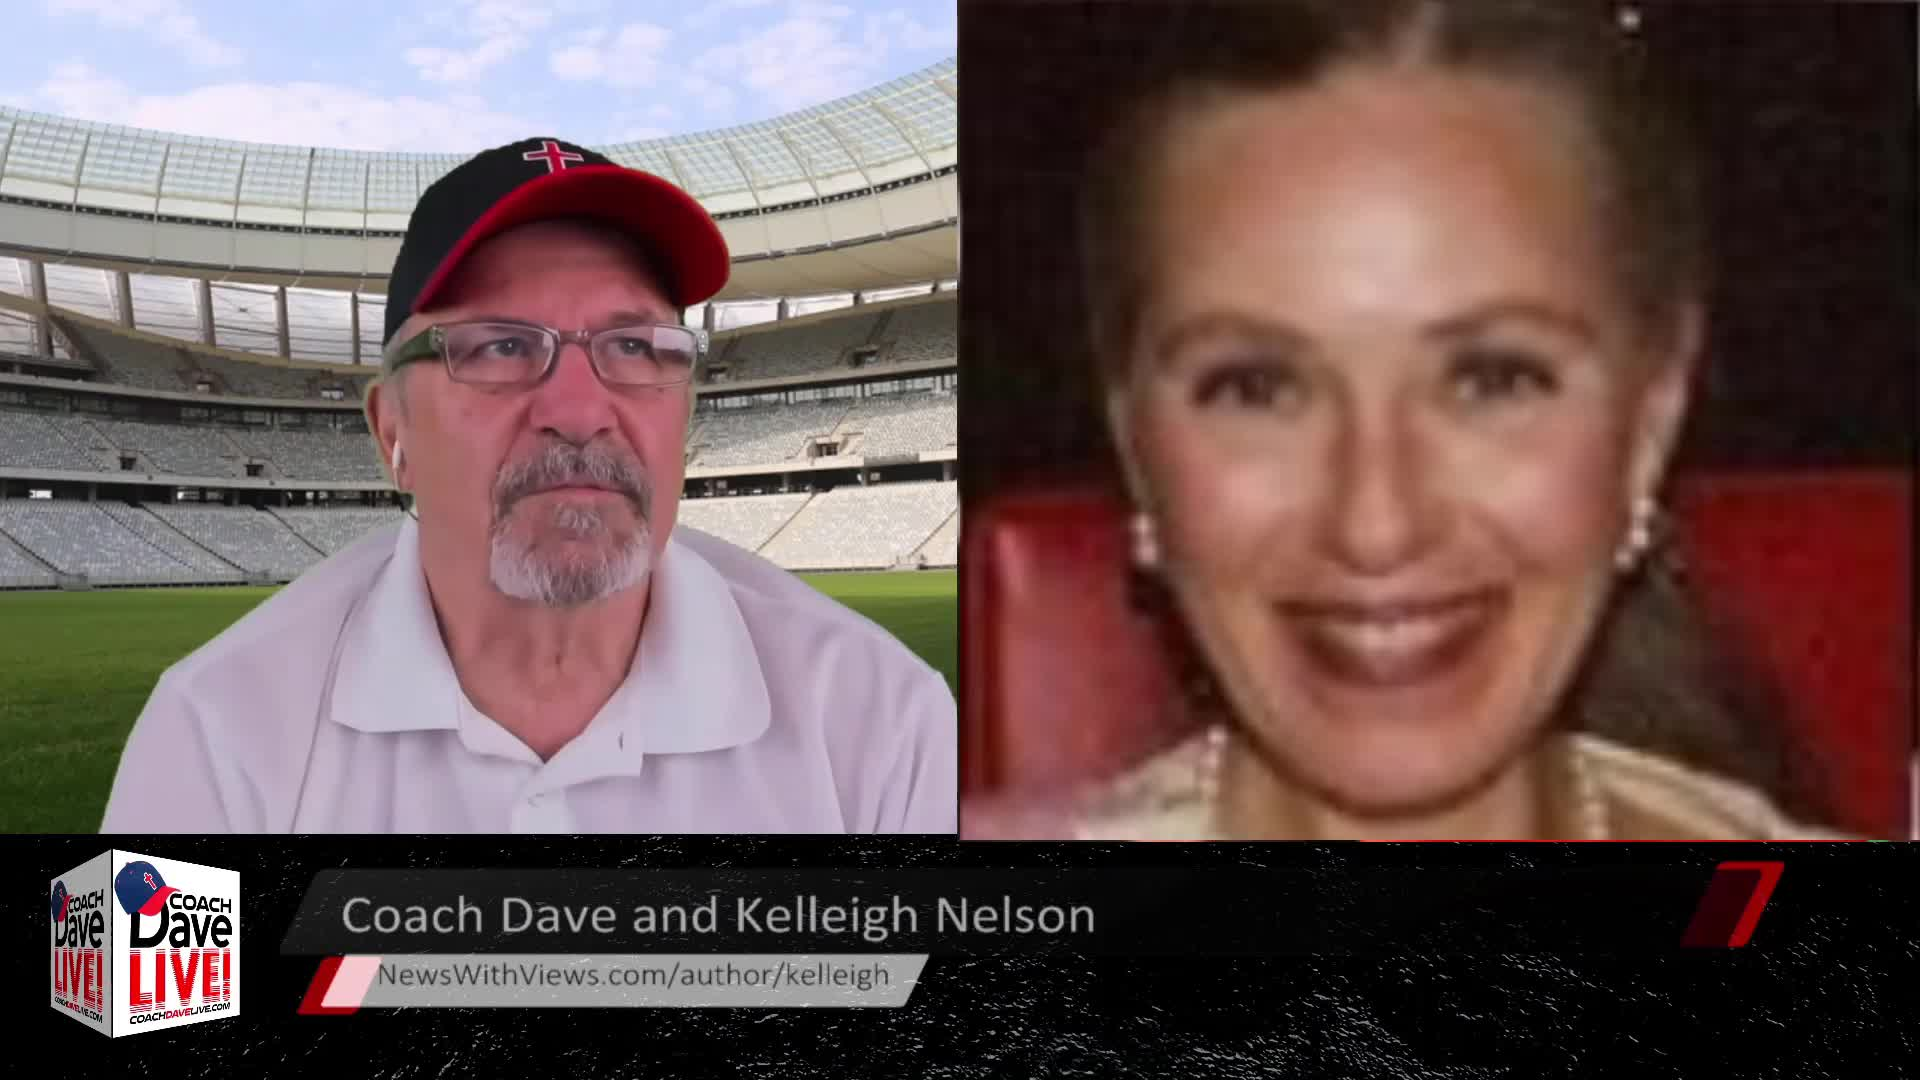 Coach Dave LIVE   4-1-2021   SPECIAL GUEST: AUTHOR KELLEIGH NELSON – AUDIO ONLY